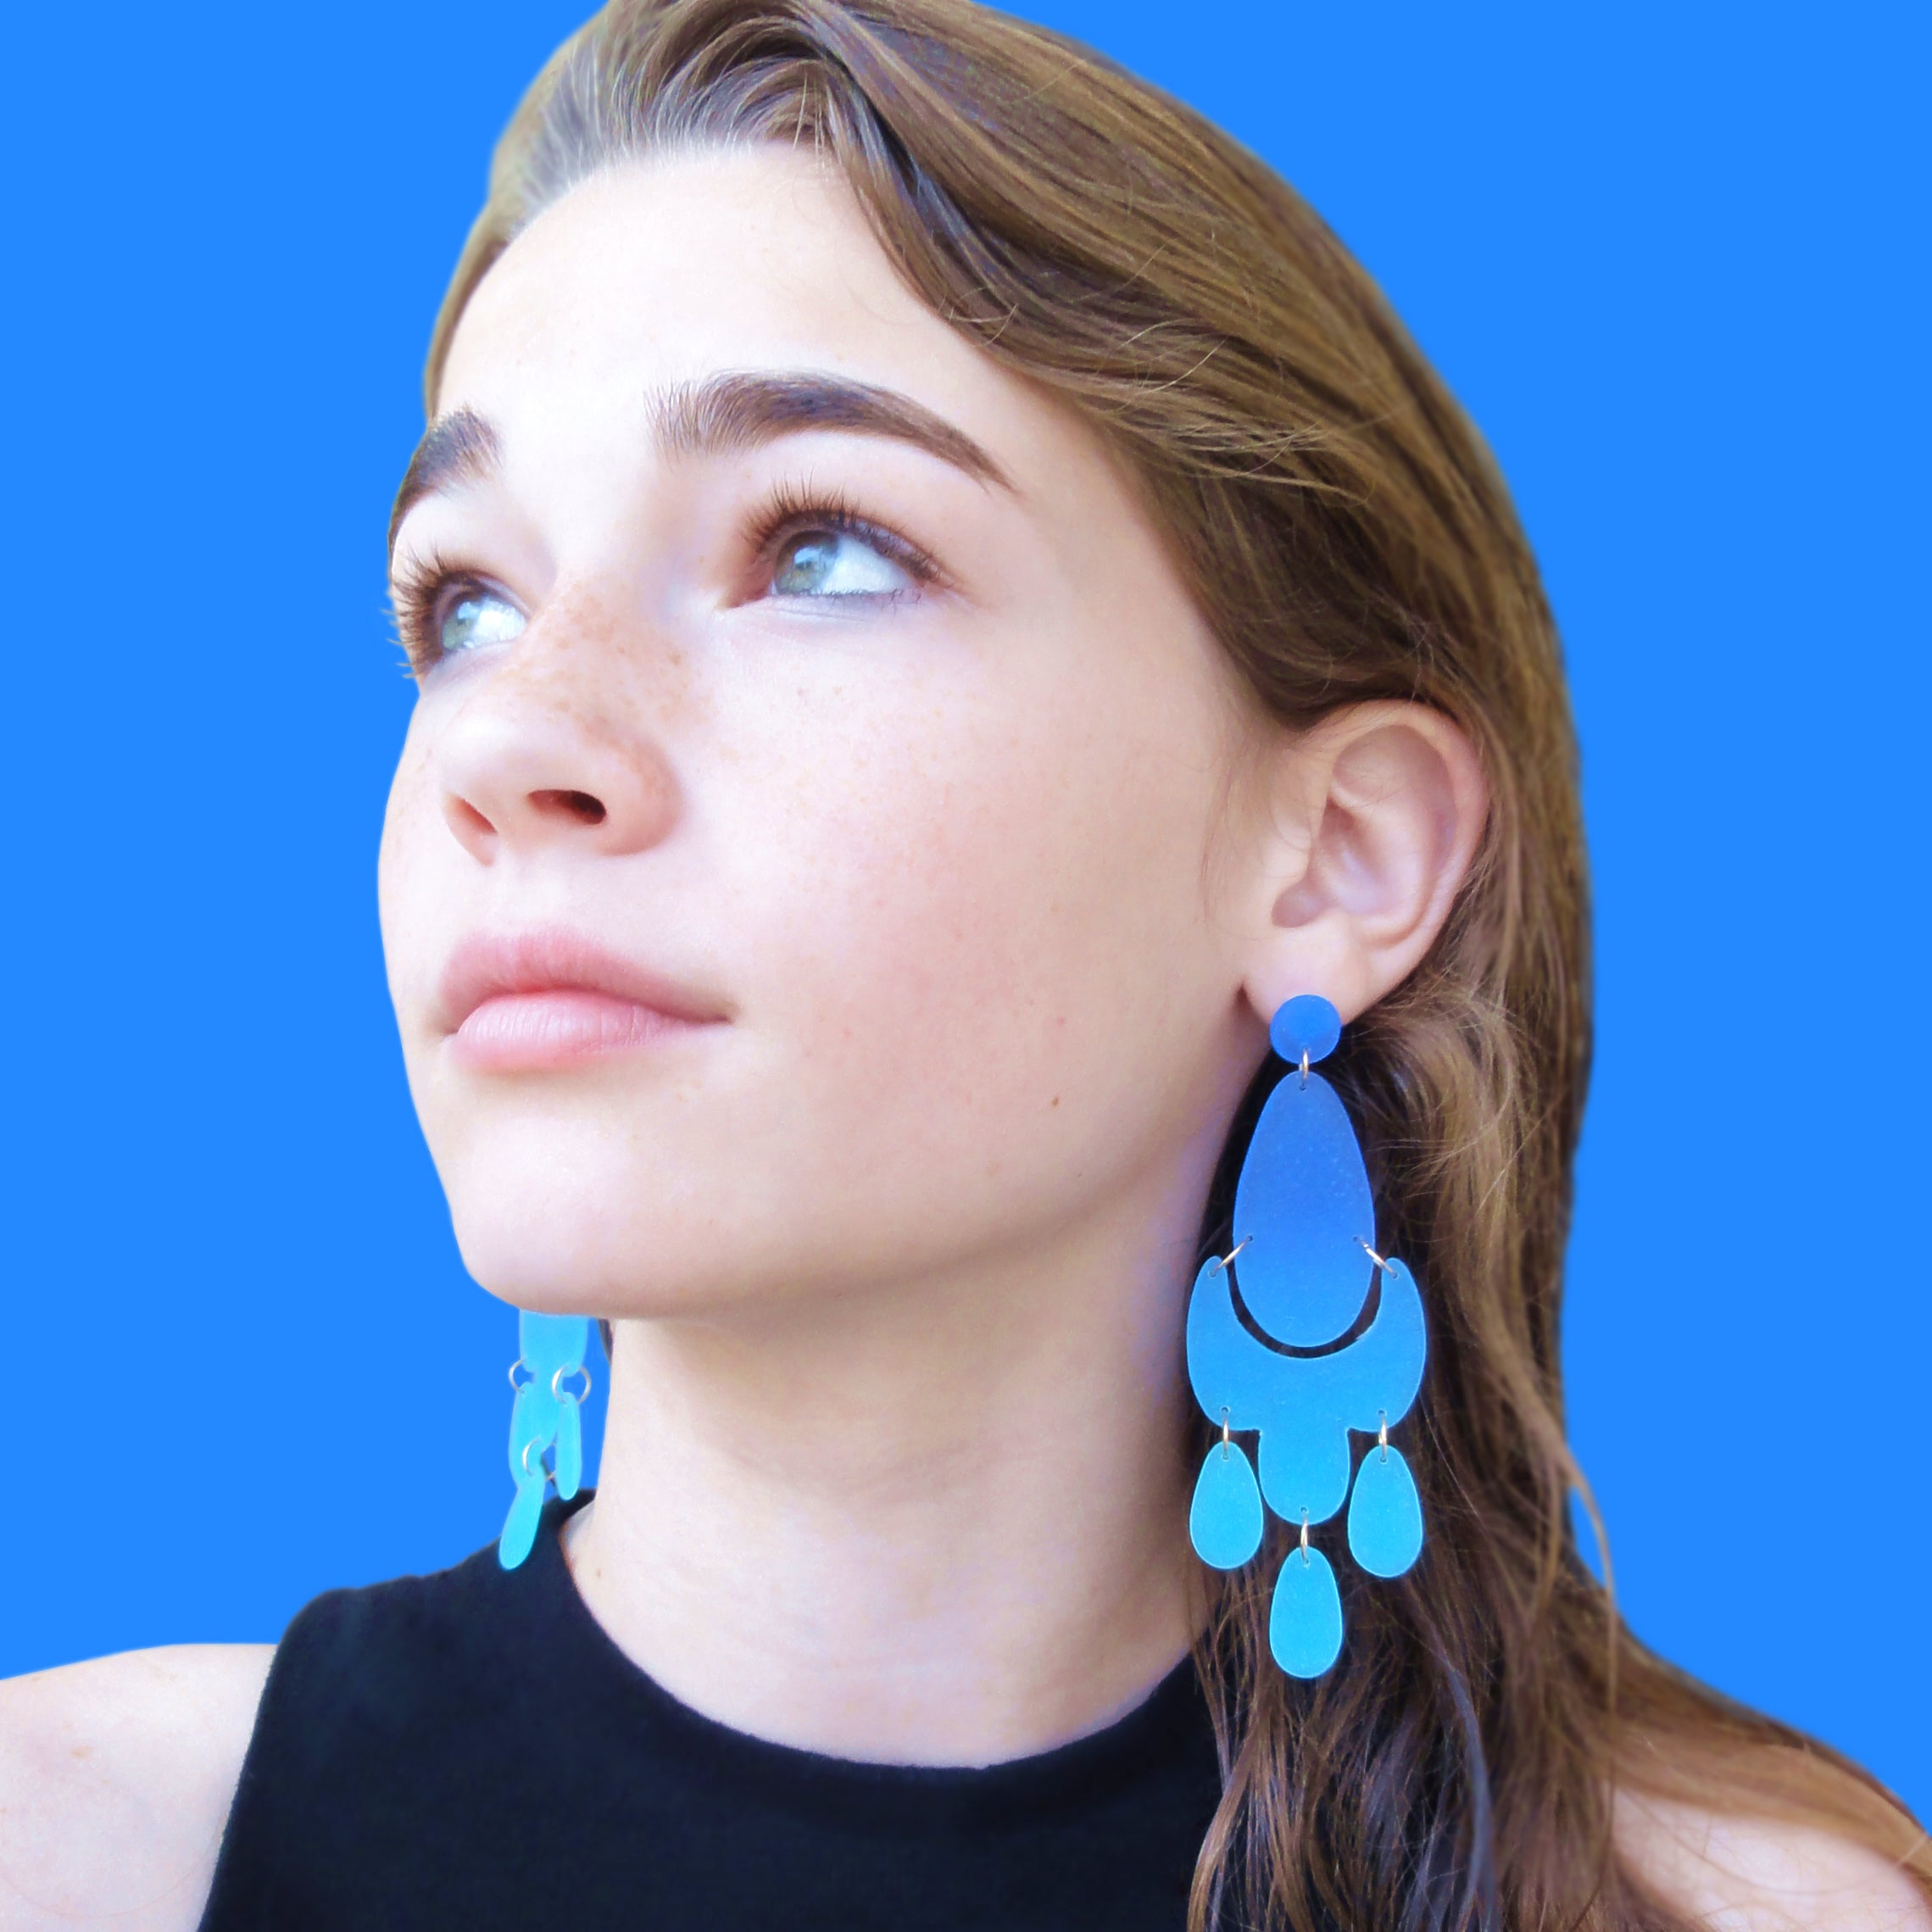 Small soleil earrings aqua ice sky blue shannon carney lab large chandelier earrings royal blue dark turquoise mozeypictures Image collections